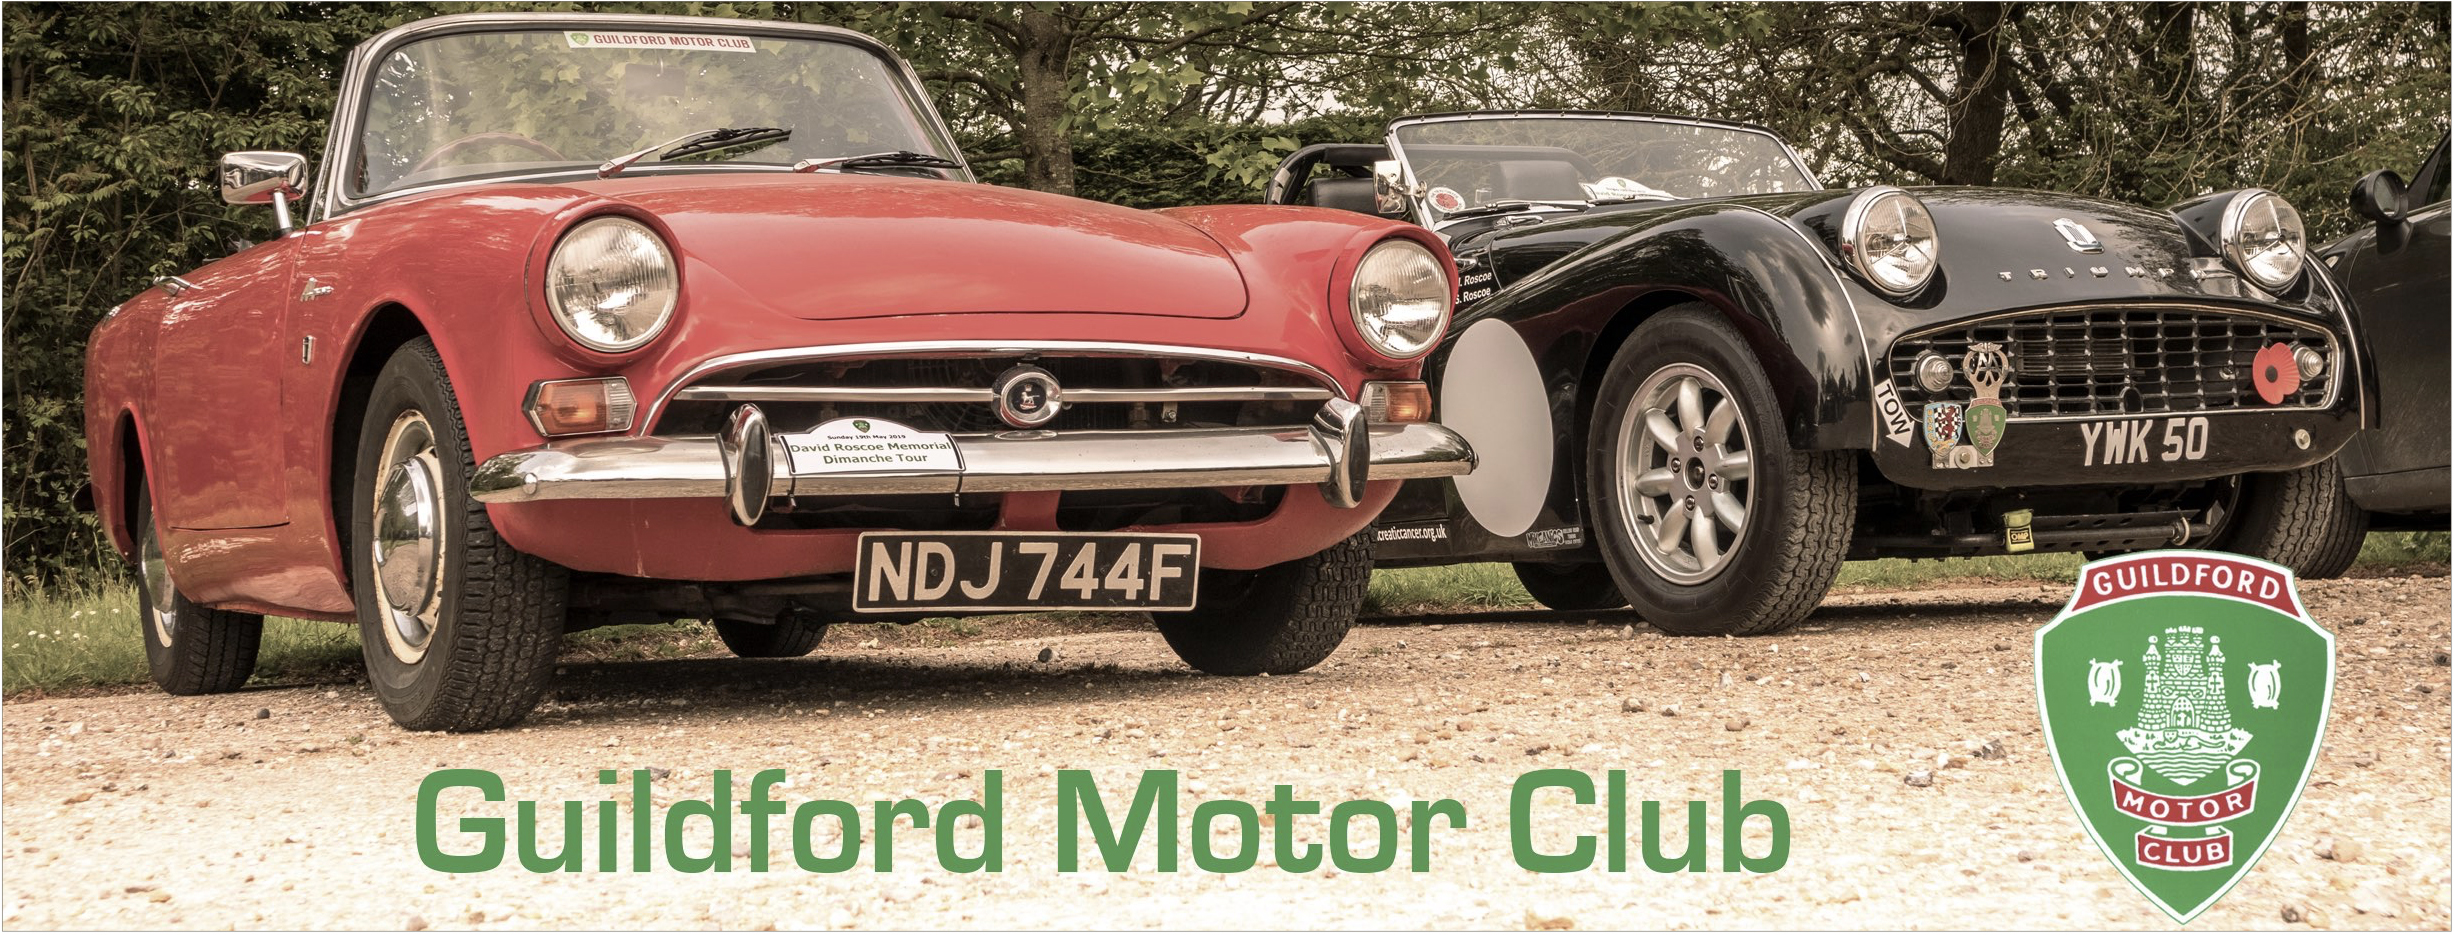 Guildford Motor Club